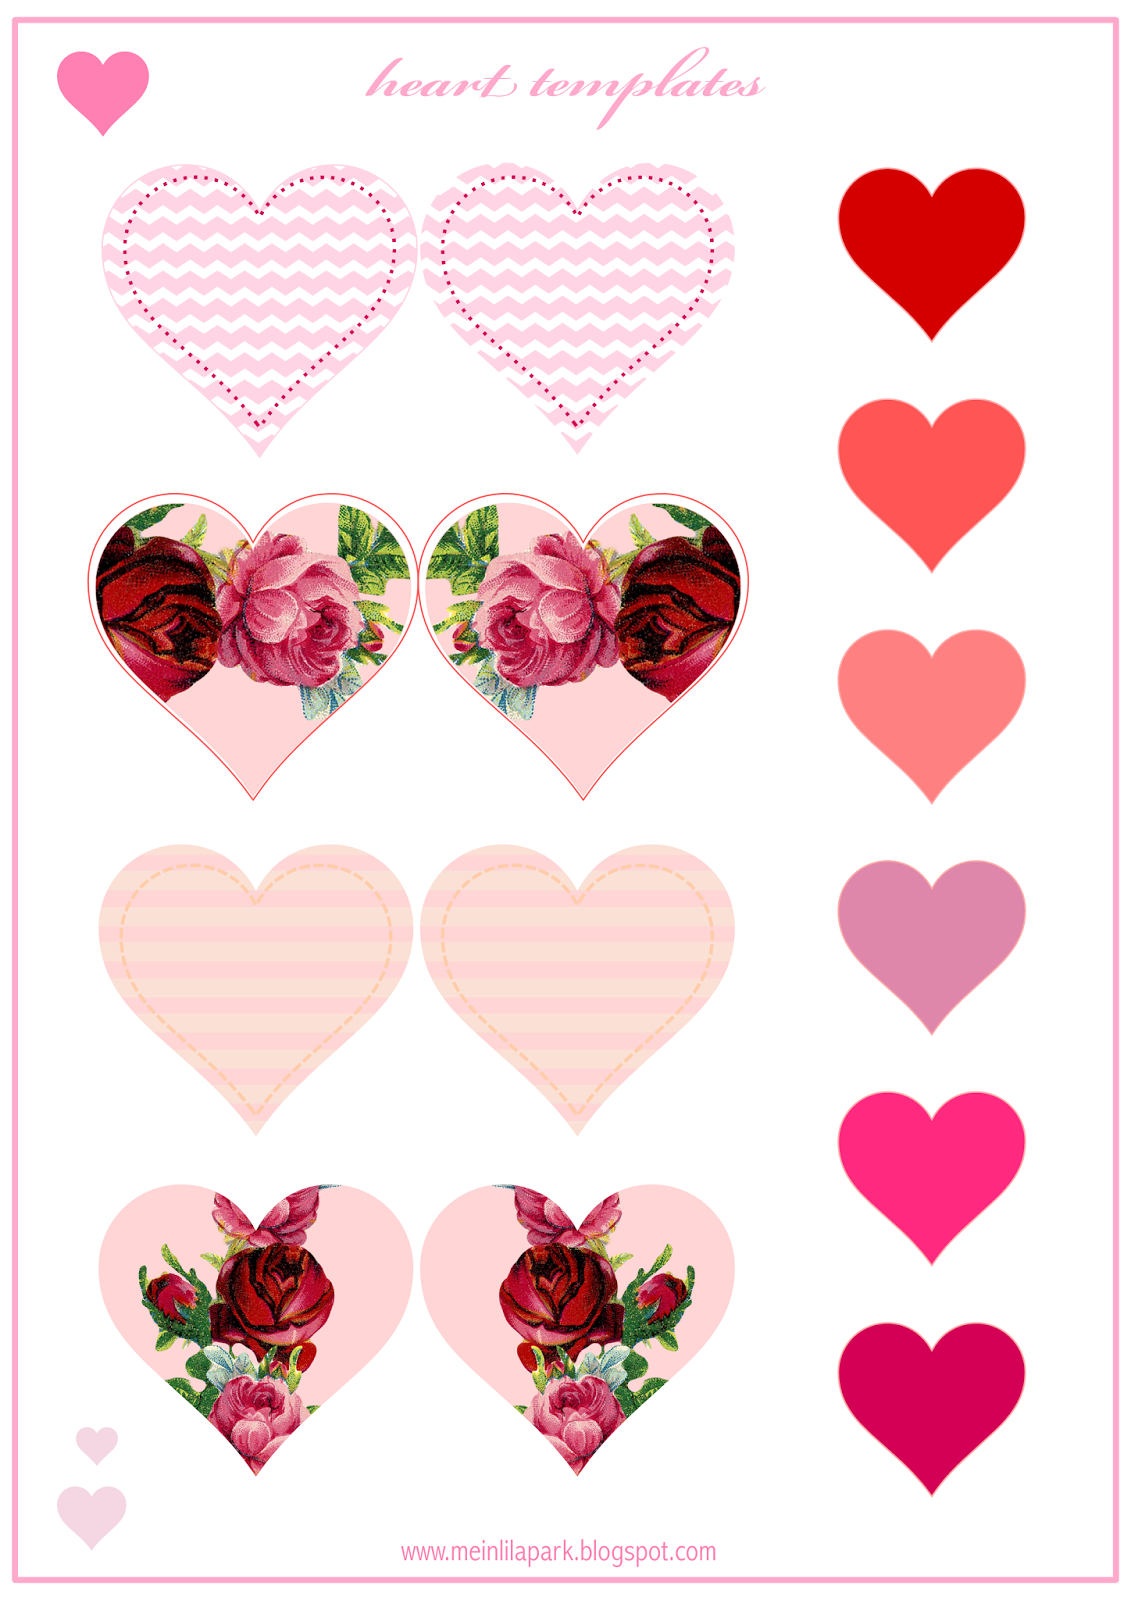 This is a photo of Exceptional Valentine Template Printable